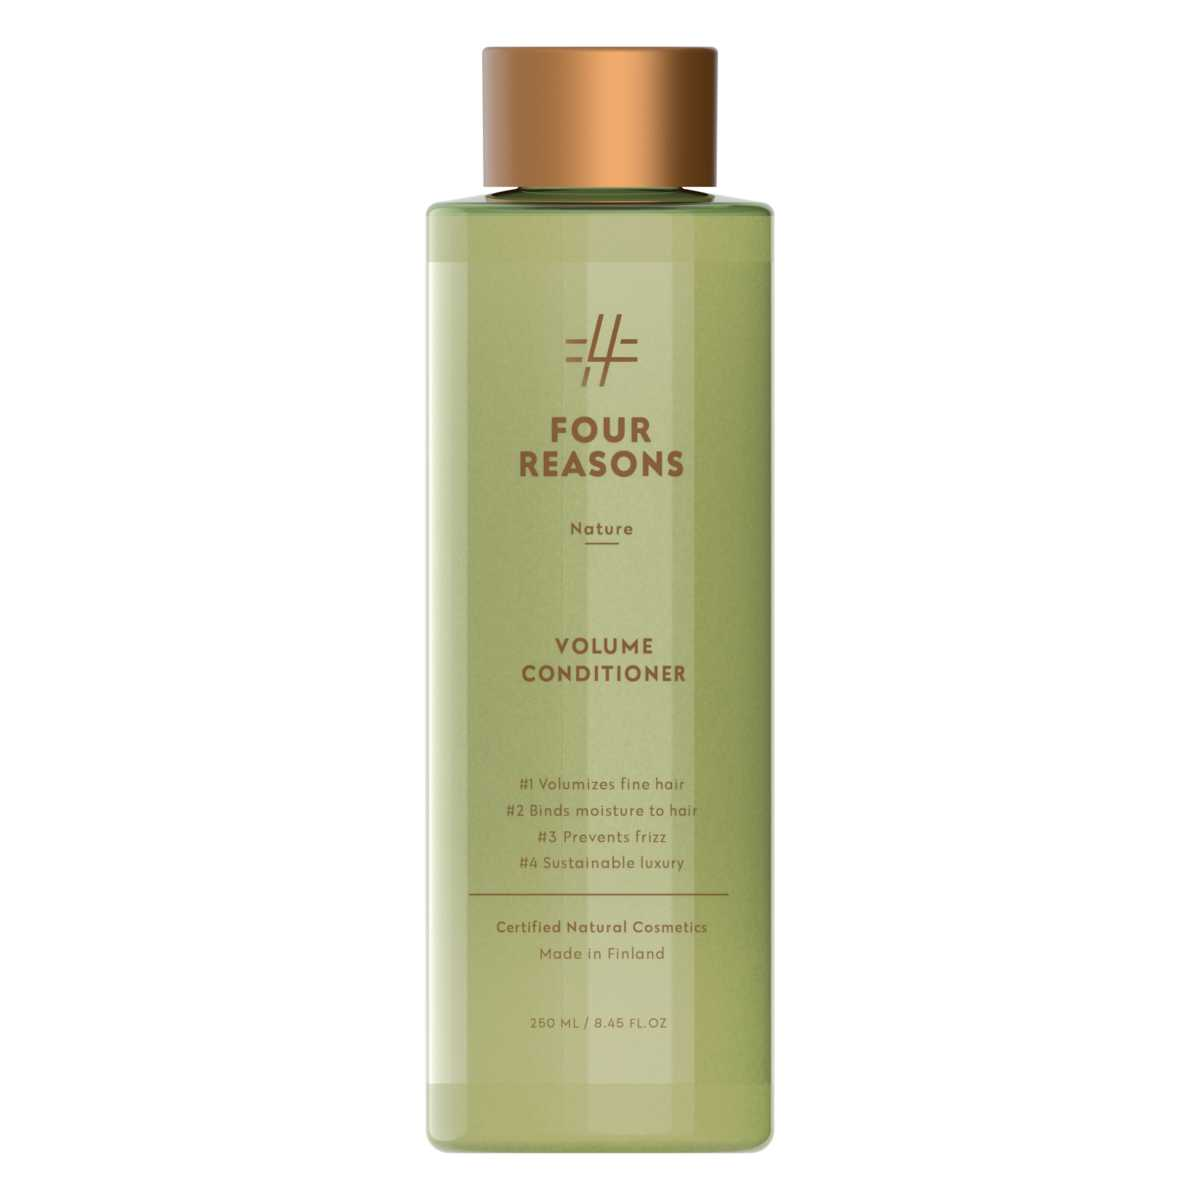 Four-Reasons-Nature-Volume-Conditioner